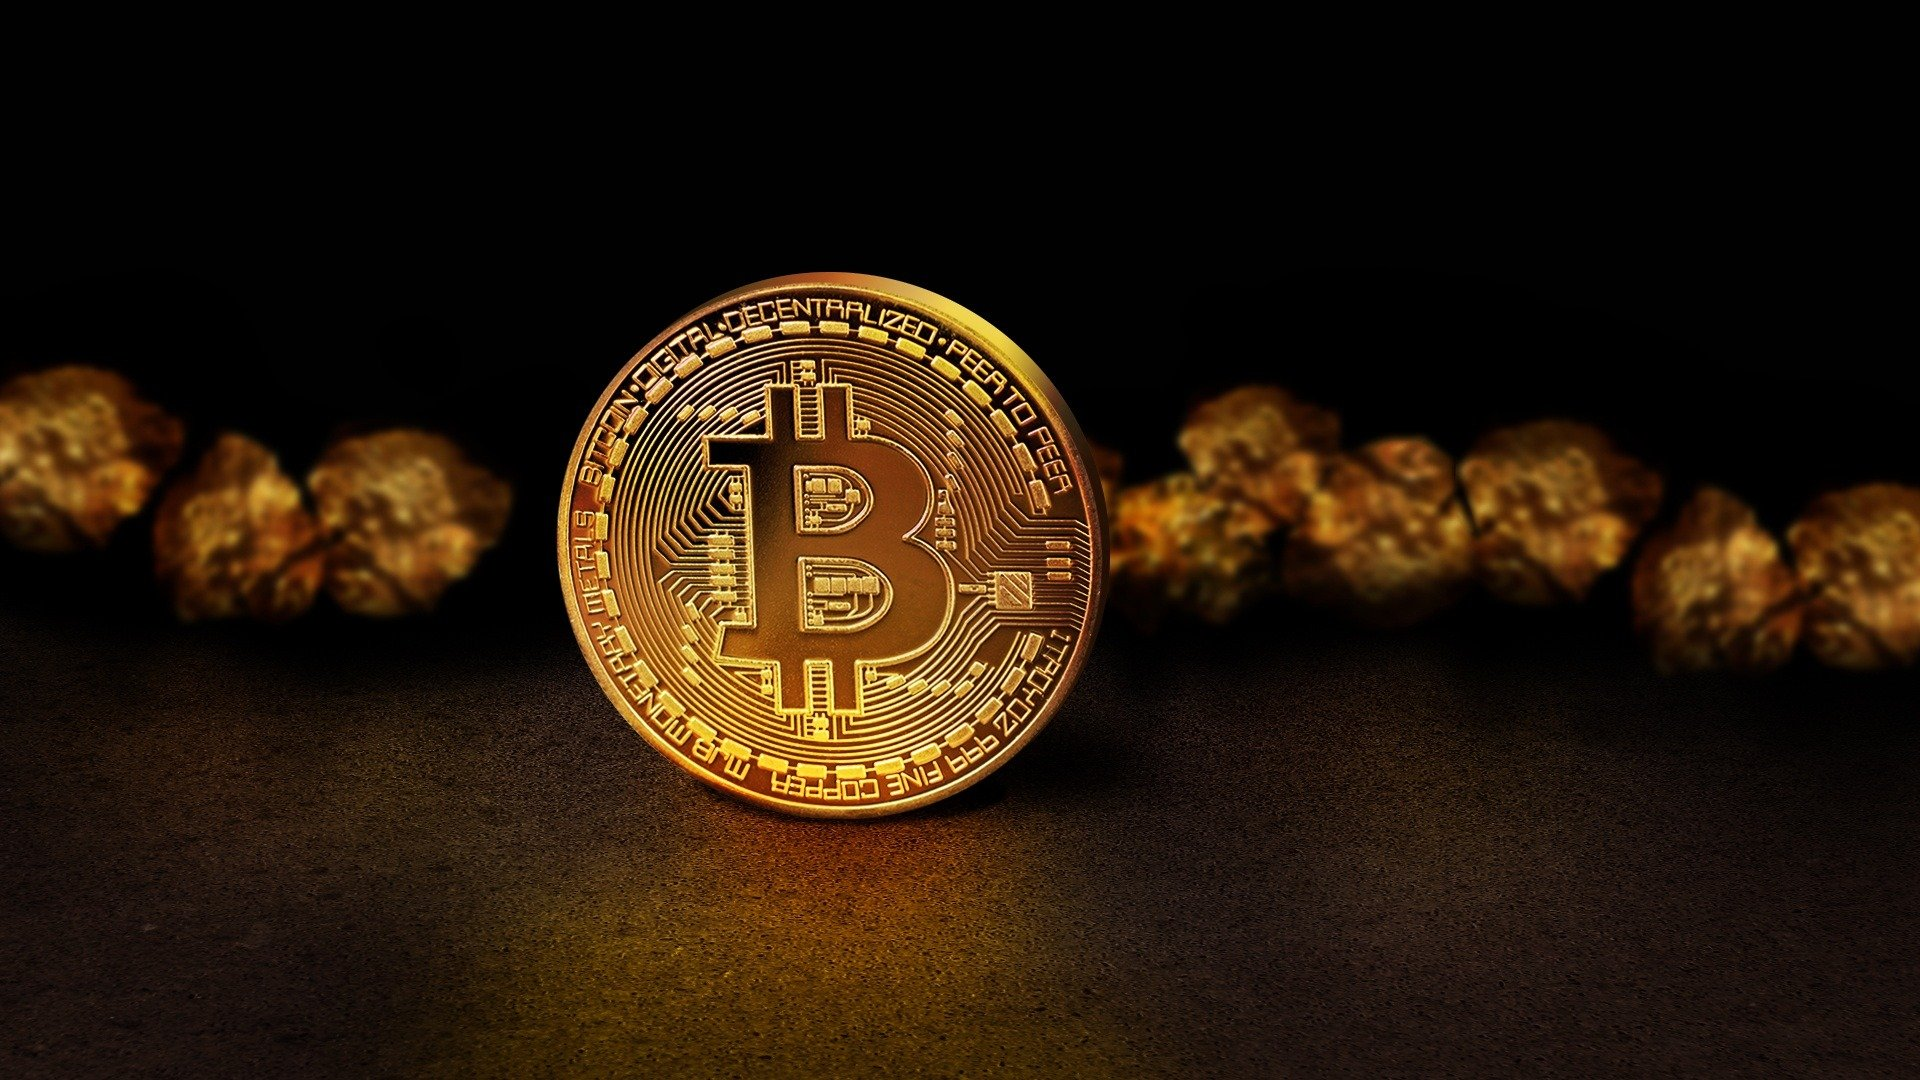 Cryptocurrency Wallpaper   Bitcoin Recession   1920x1080 1920x1080